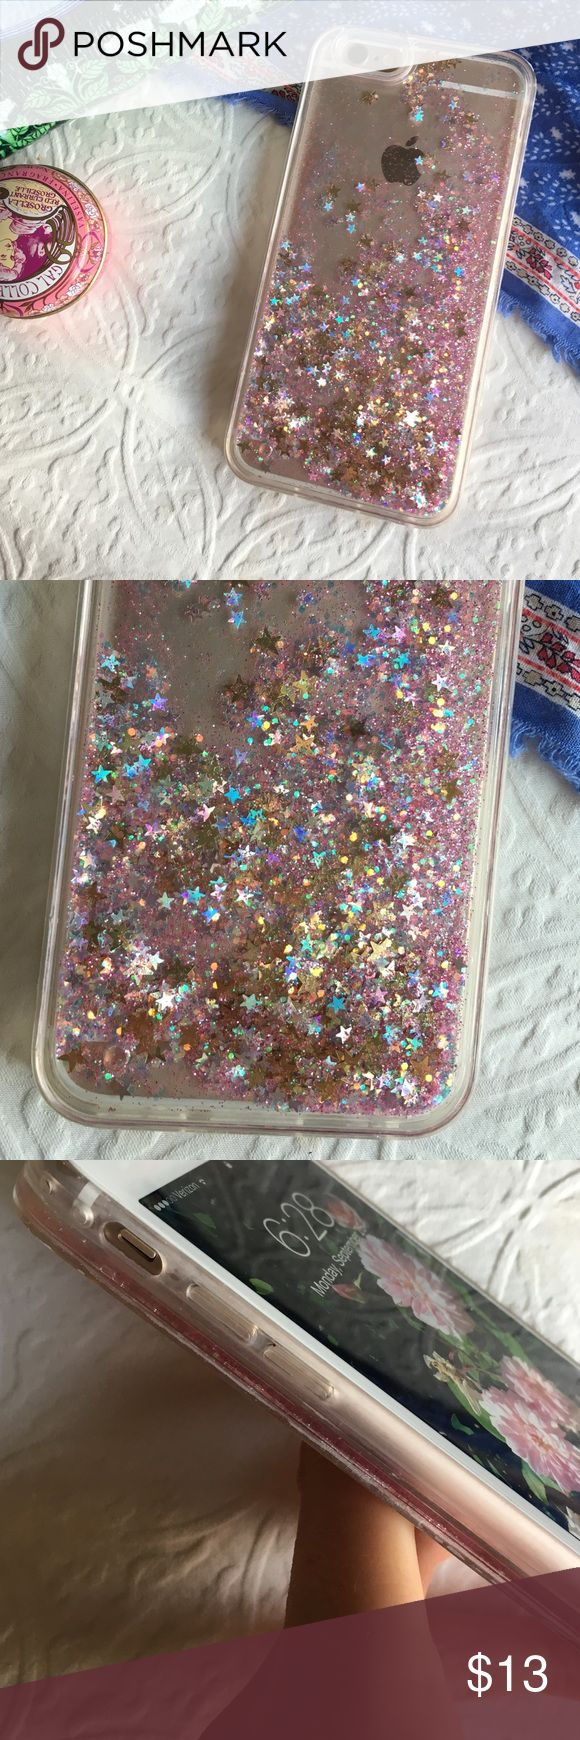 ⭐️glitter phone case⭐️ ✨brand new ✨pink and gold sparkle water case ✨for iphone 6/6s ✨protects back of phone from scratches ✨not from listed brand-only for exposure ✨no lowballing please ✨ships next day excluding sundays Make an offer!  tags: sparkles, cotton candy, turquoise, pretty, artsy, protective, otter box, speck, hearts, heart, brandy melville, urban outfitters, violet, tumblr, cool, apple, gift, pearlescent, holographic, translucent, transparent, clear, Brandy Melville Accessories…